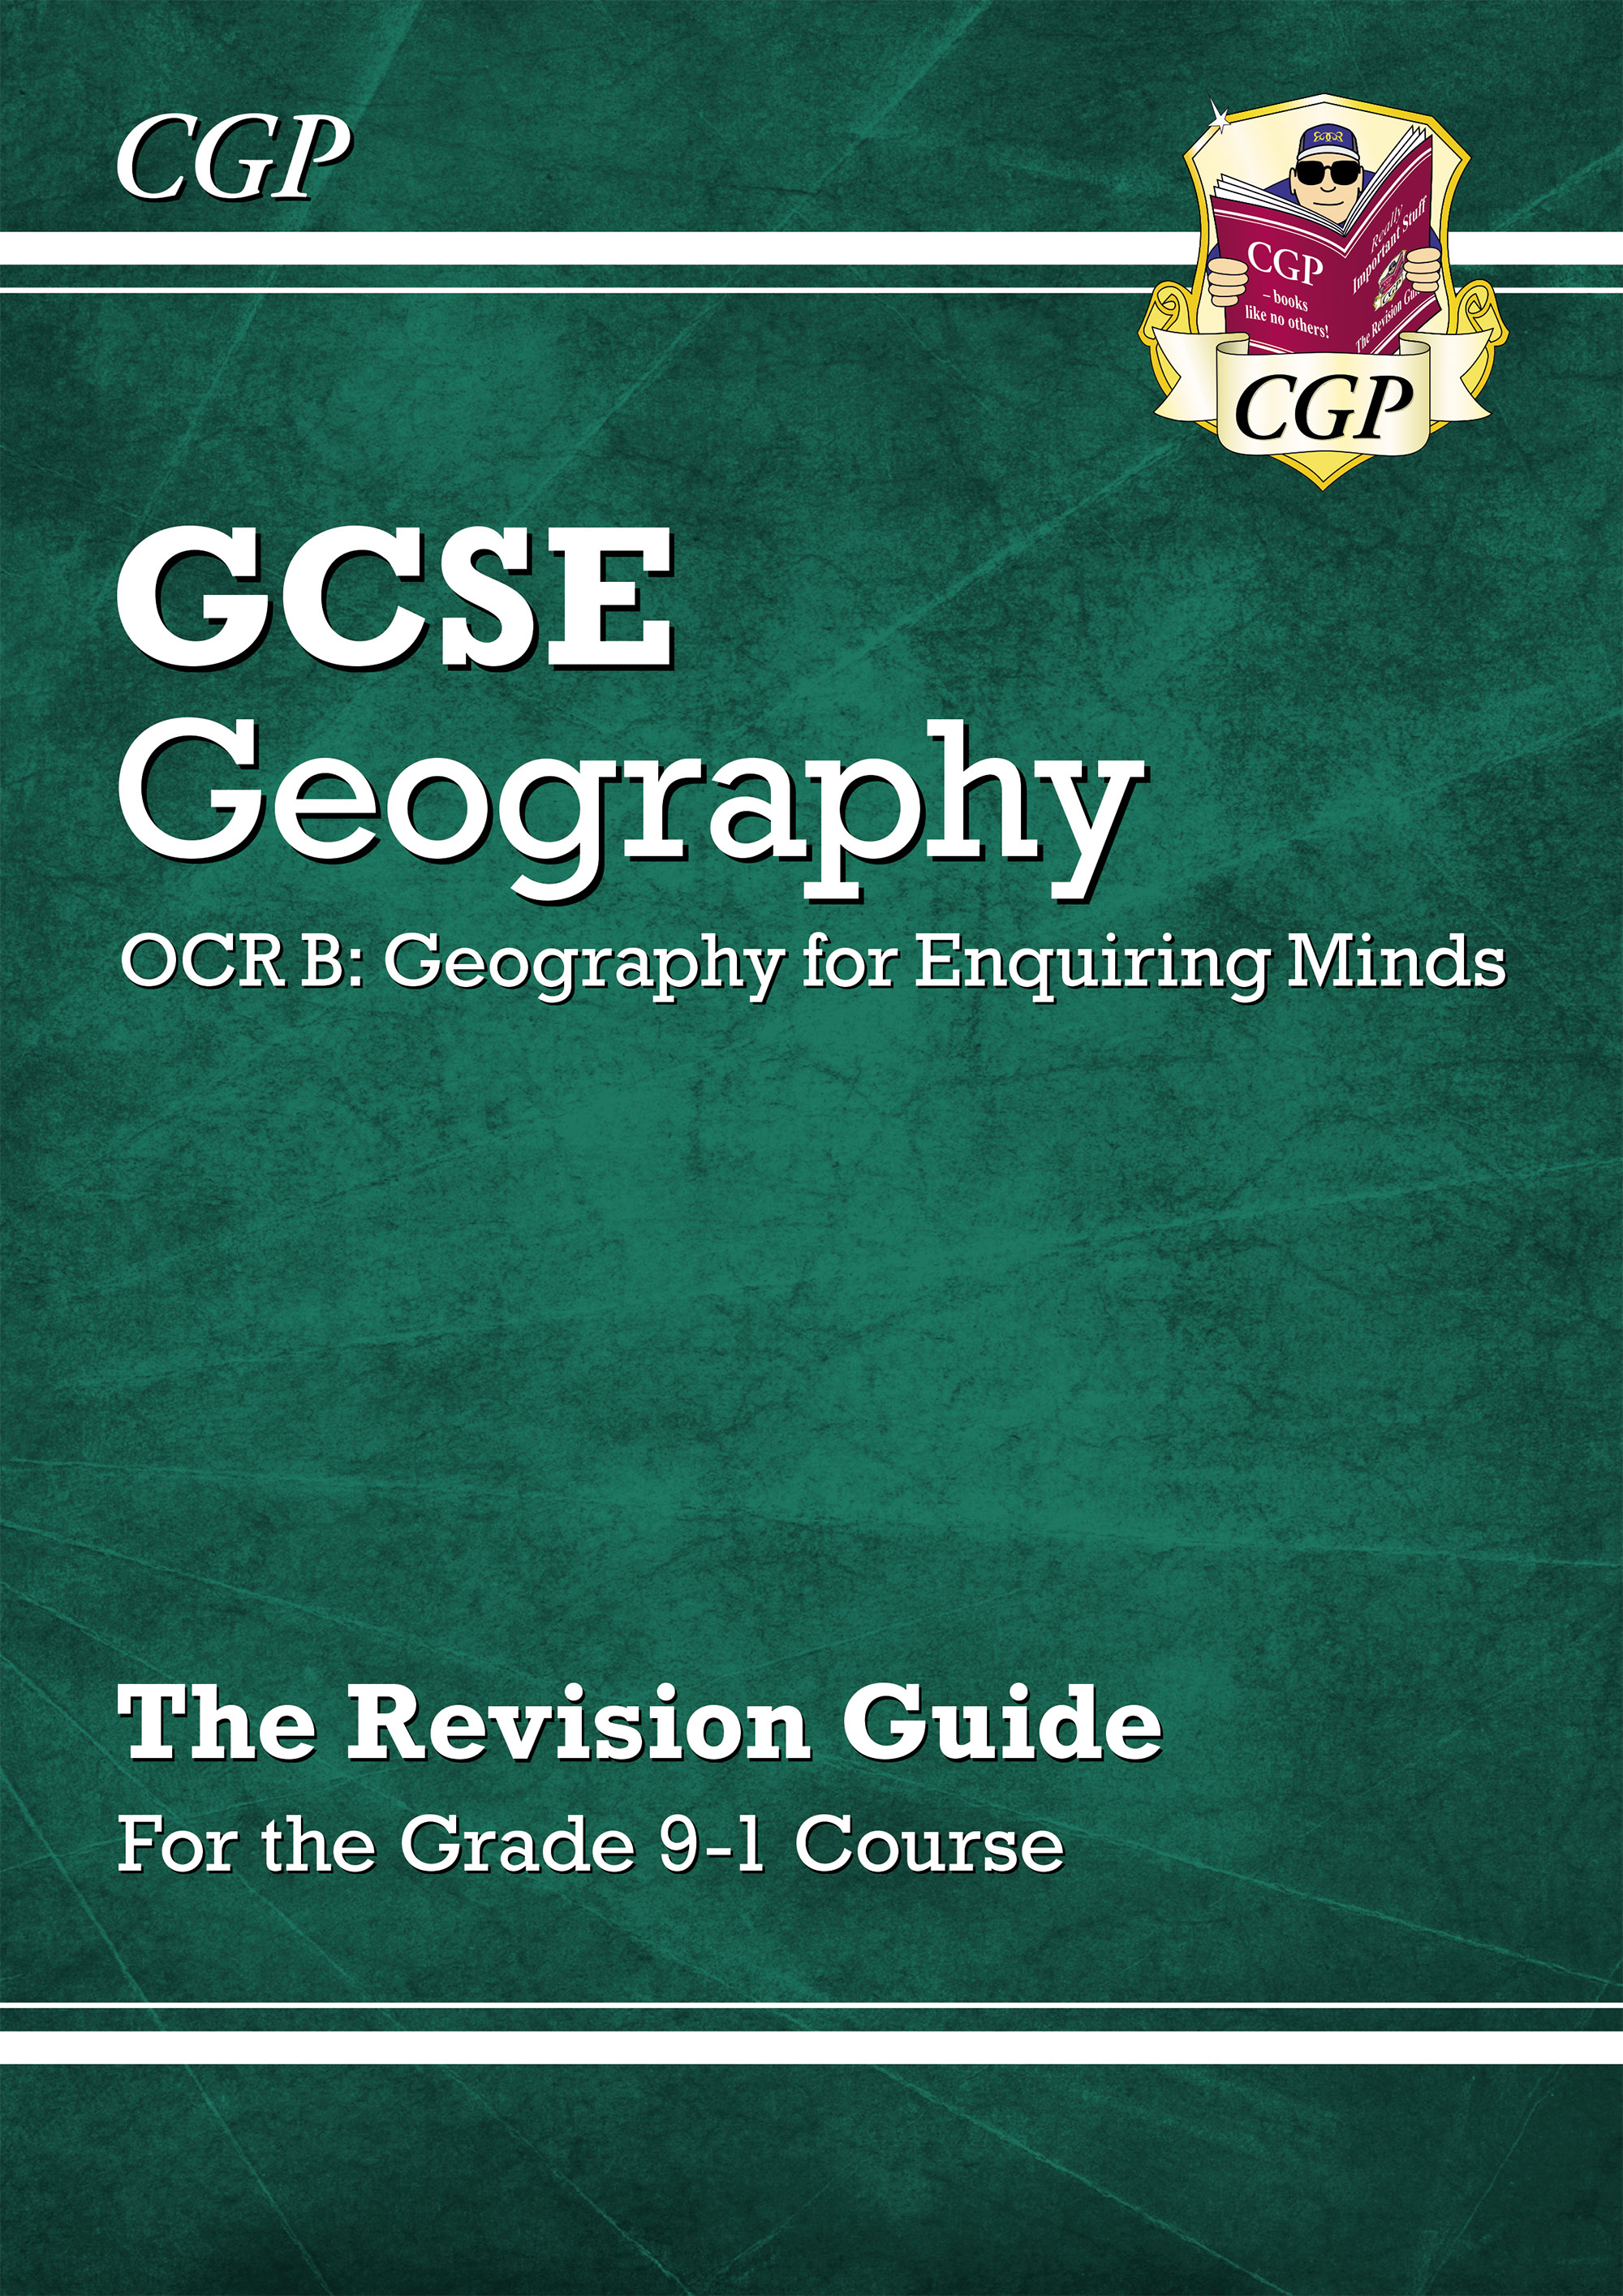 GRR44DK - New Grade 9-1 GCSE Geography OCR B: Geography for Enquiring Minds - Revision Guide